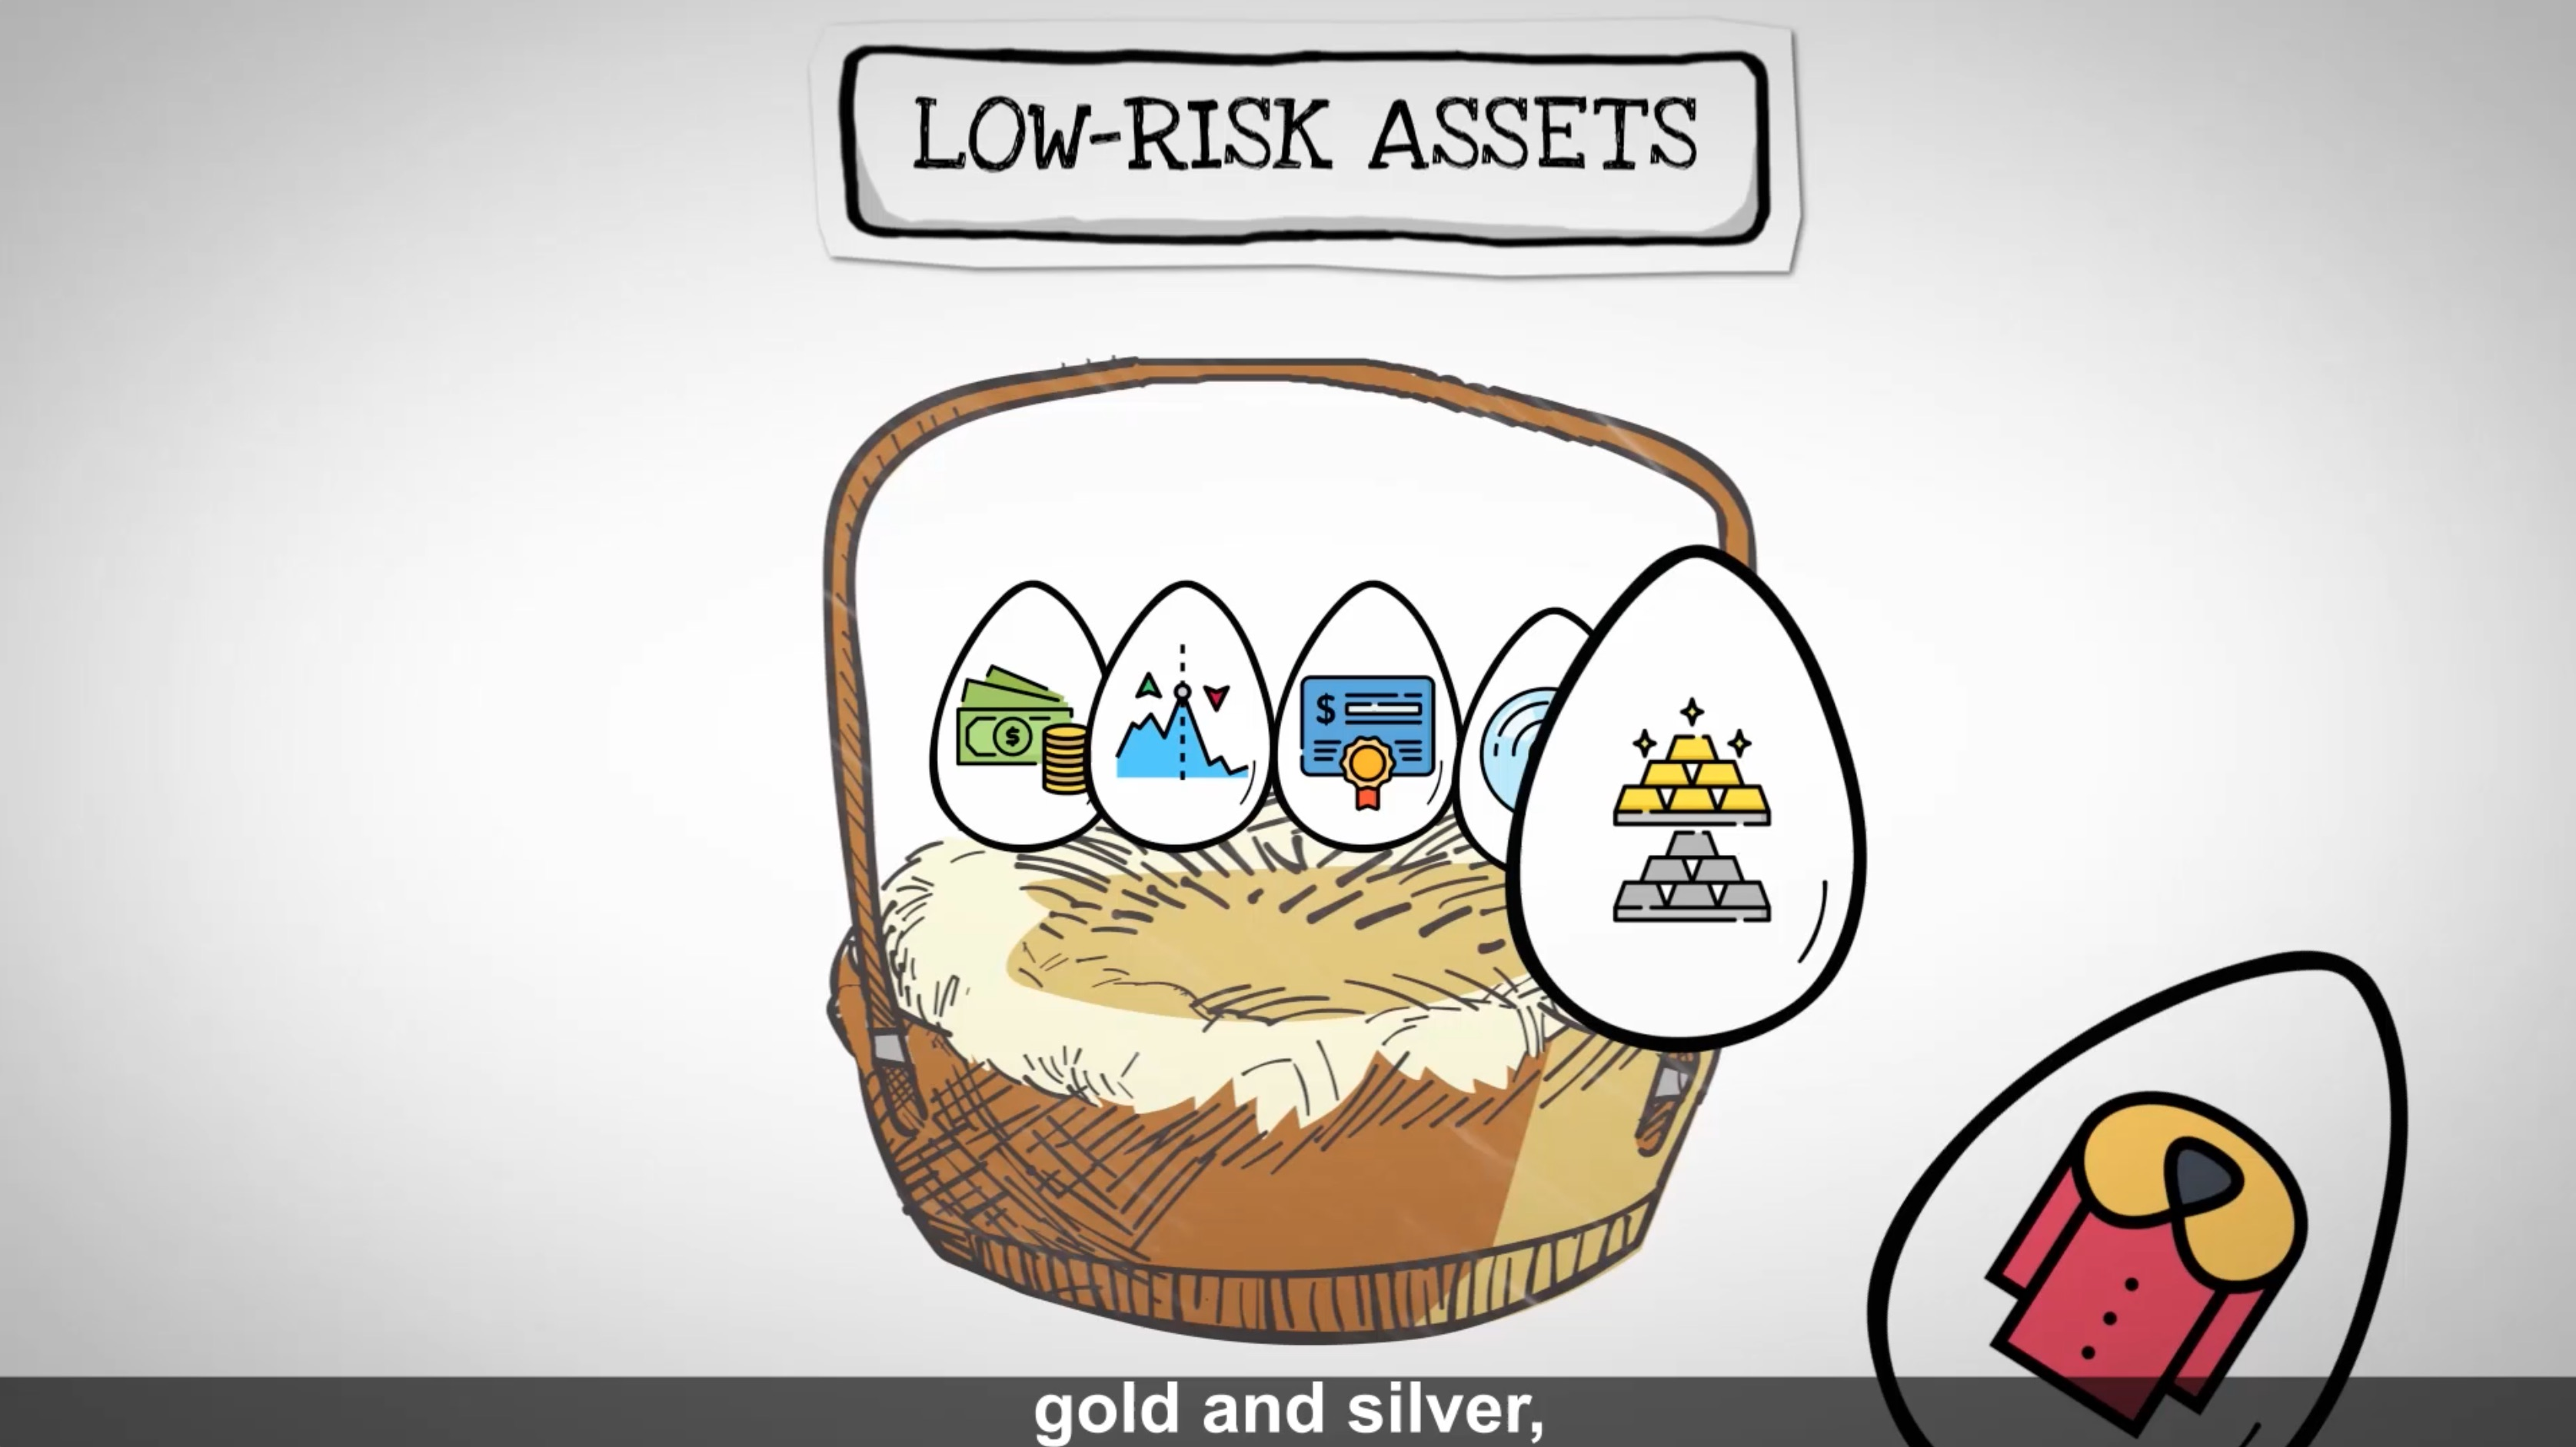 APSANevada - Low-Risk and High-Risk Assets